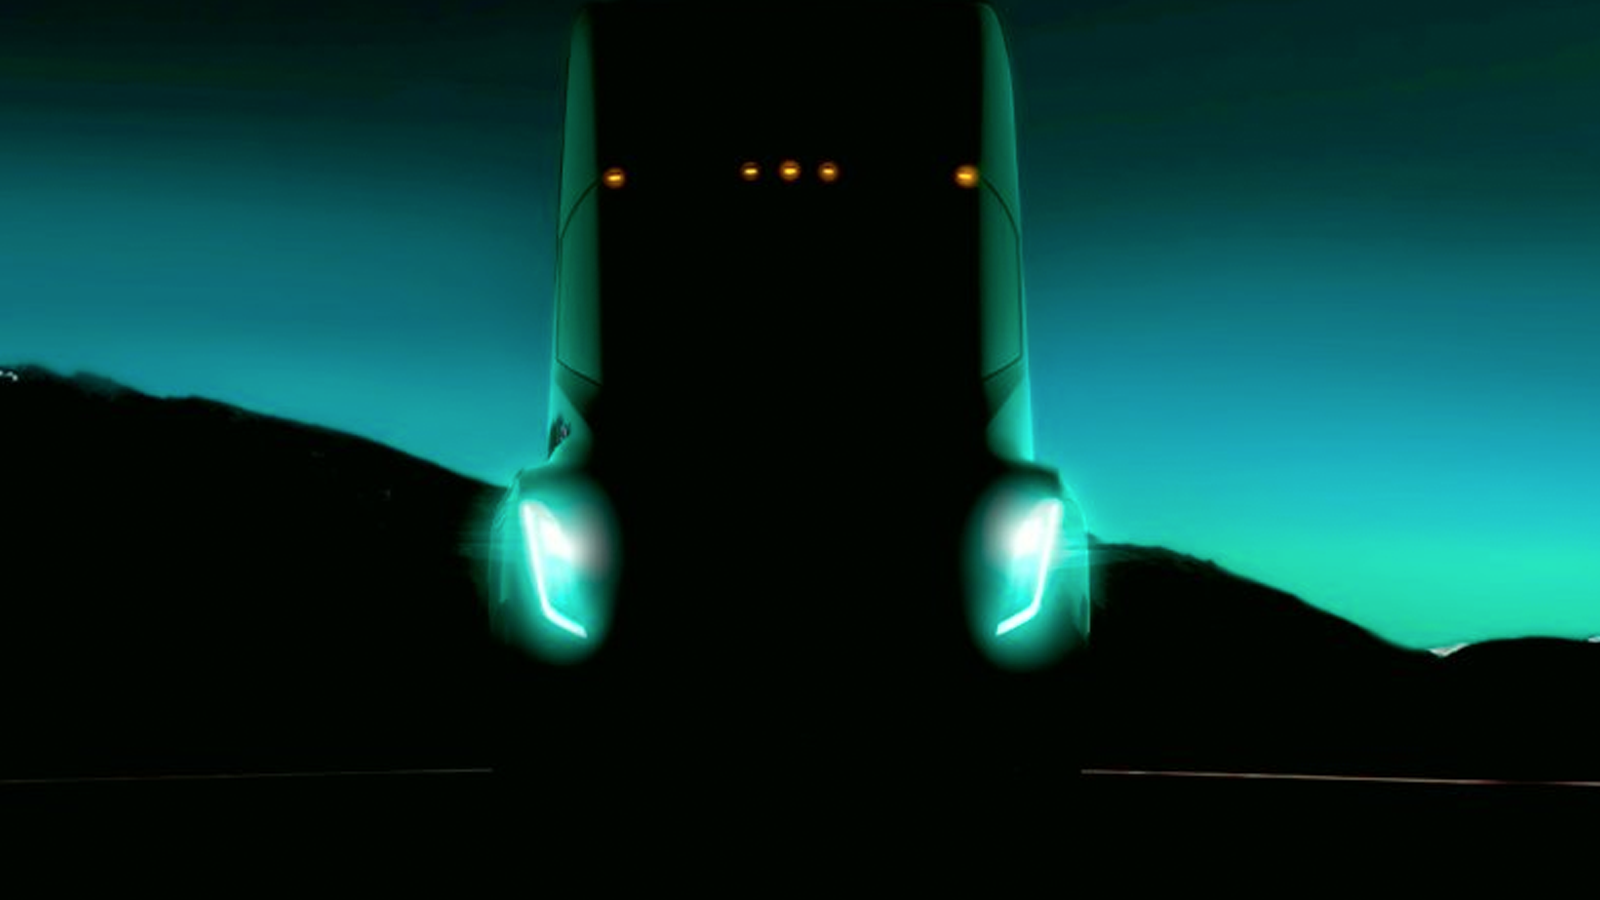 Tesla semi truck to test self-driving, capable of 'platooning'